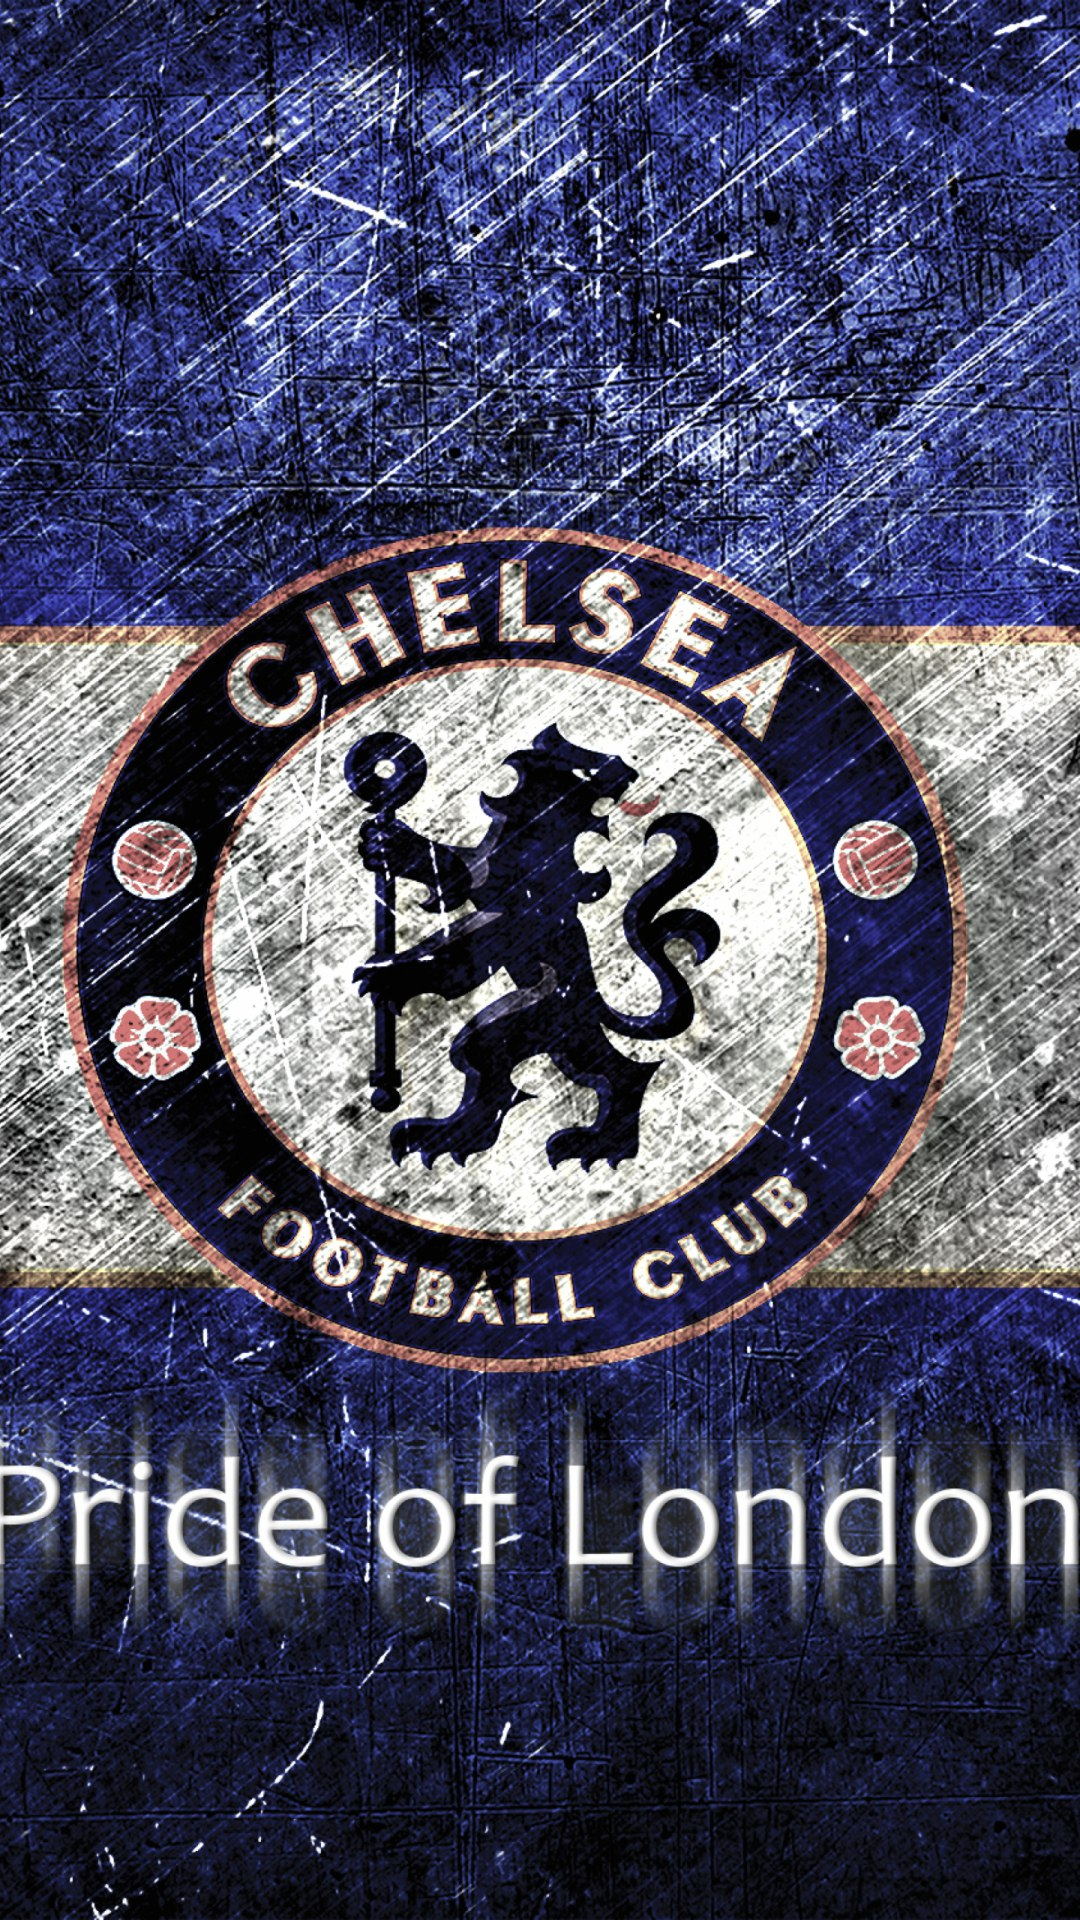 Wallpaper Volleyball Quotes Download Chelsea Fc Iphone Wallpaper Gallery